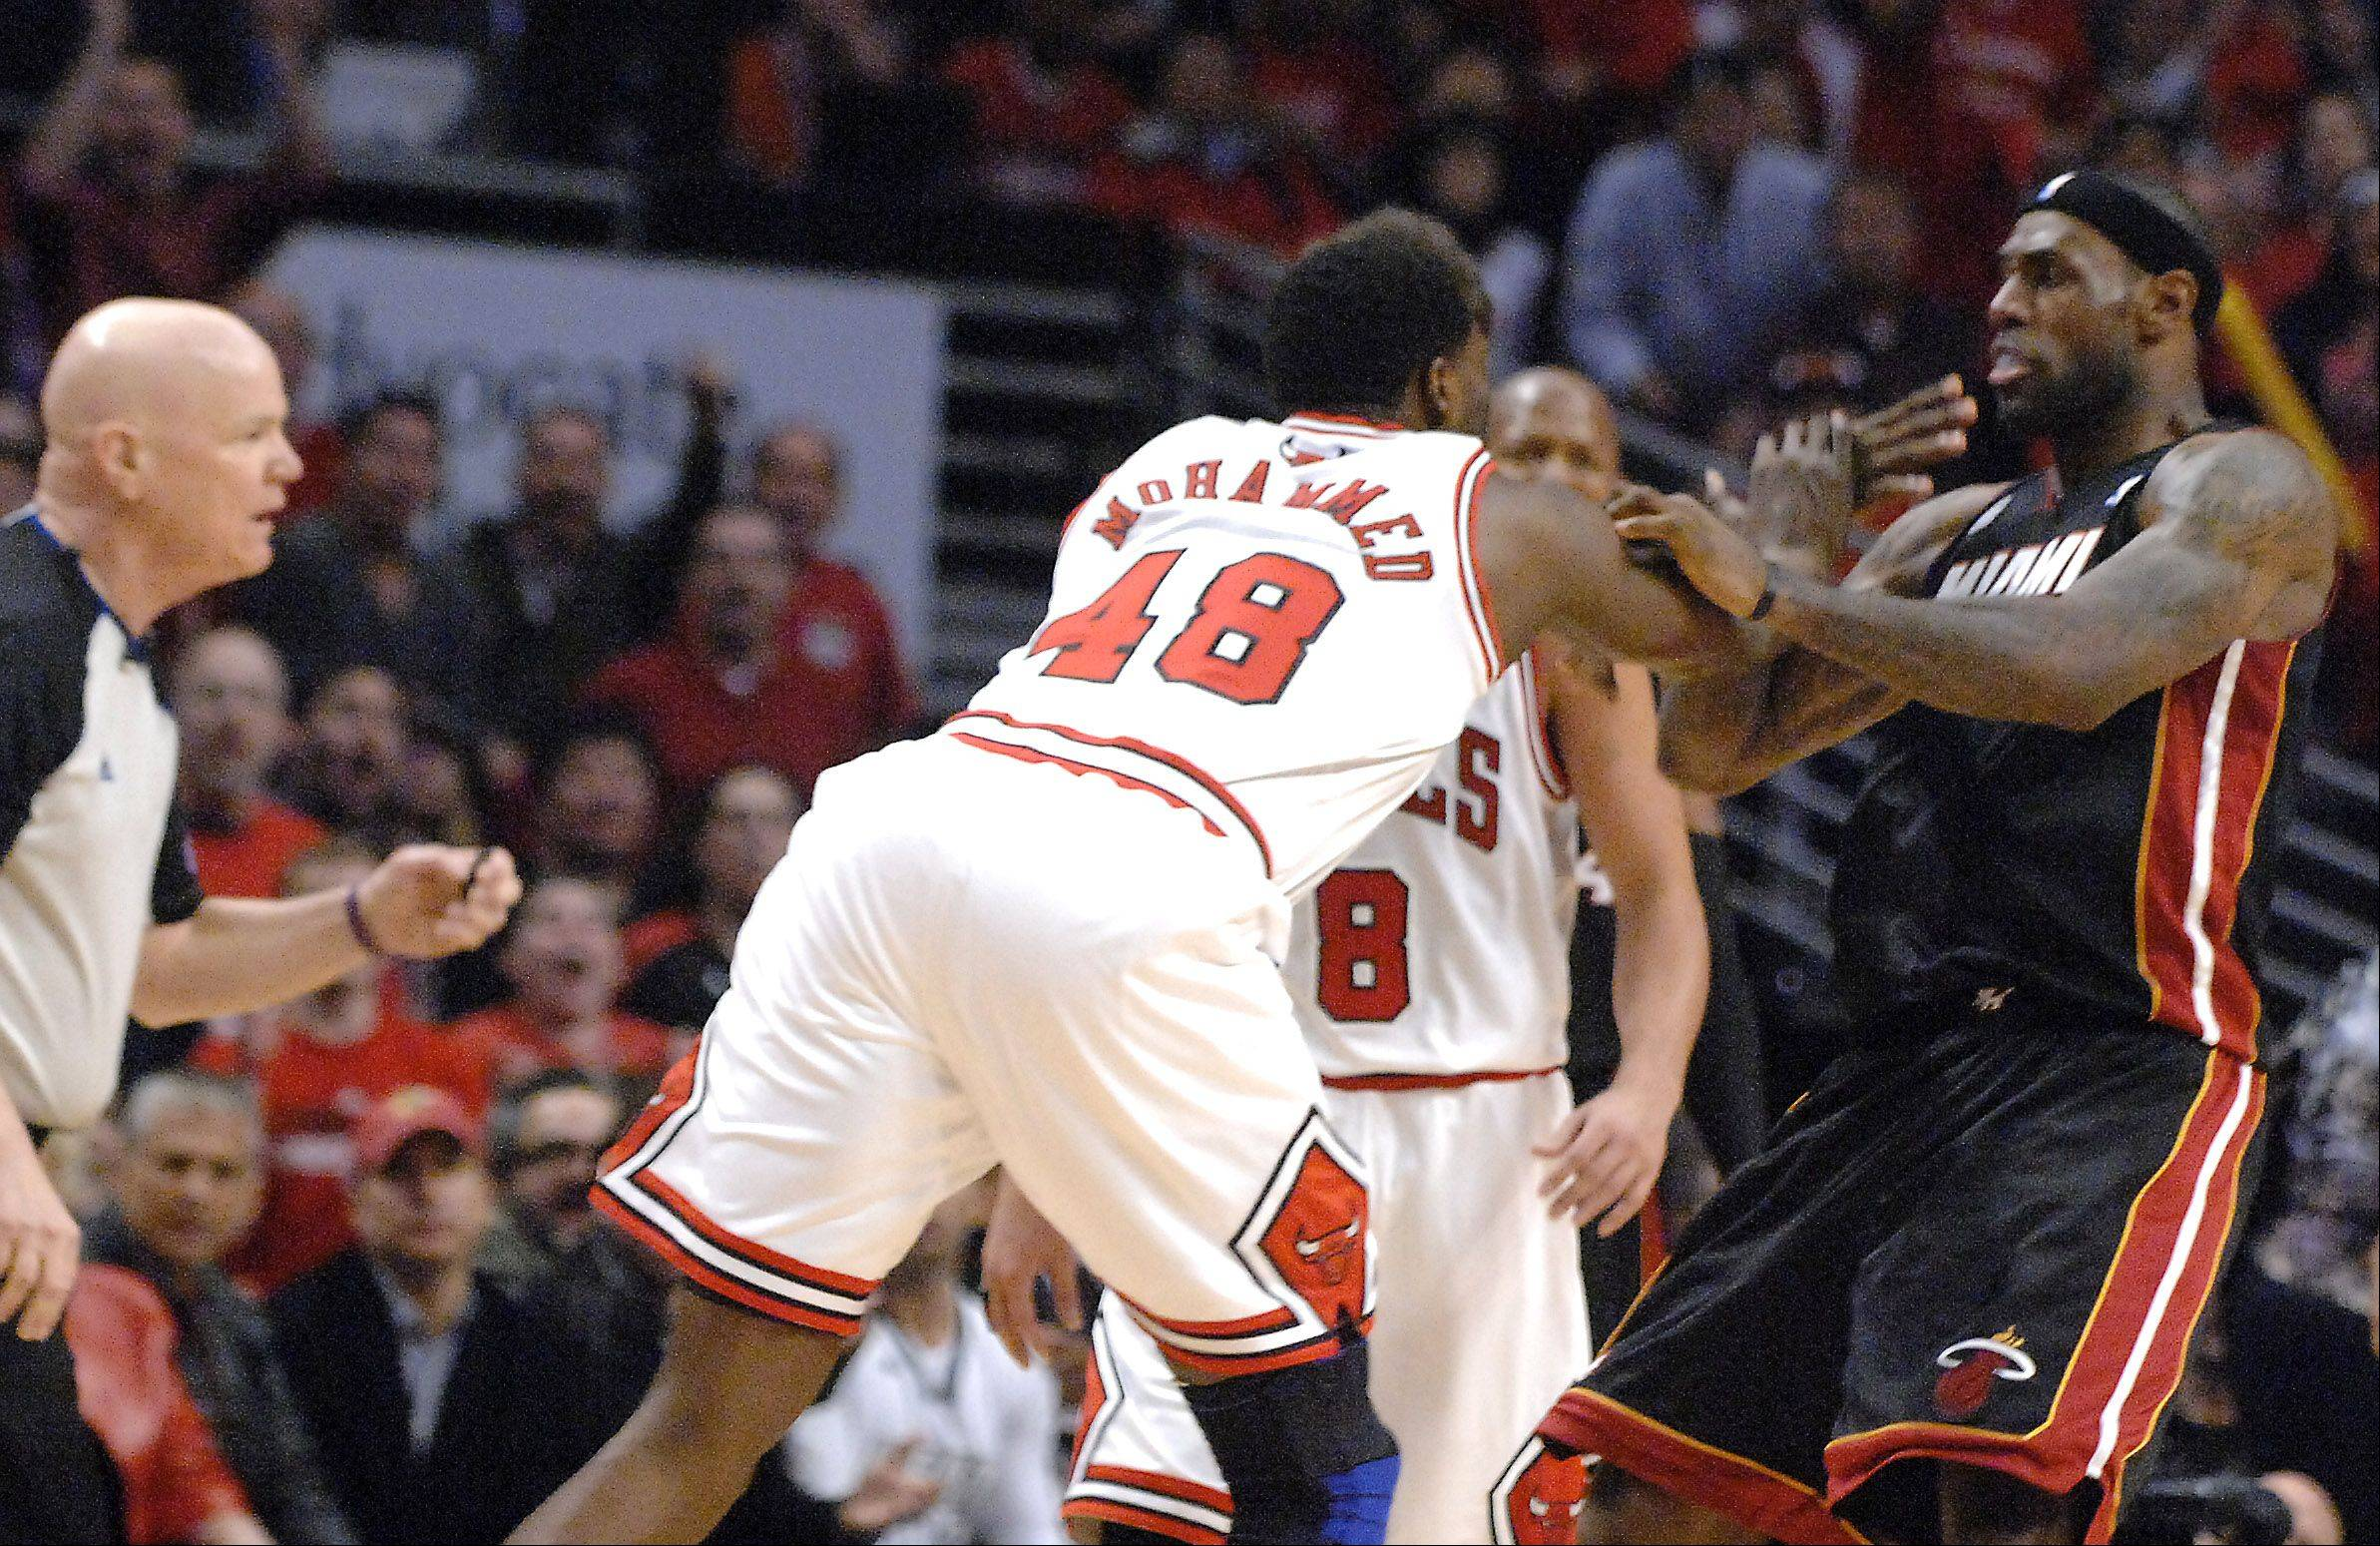 Bulls center Nazr Mohammed (48) shoves Miami Heat small forward LeBron James (6) and gets ejected during game 3 of the NBA Eastern Conference semifinals at the United Center on Friday.